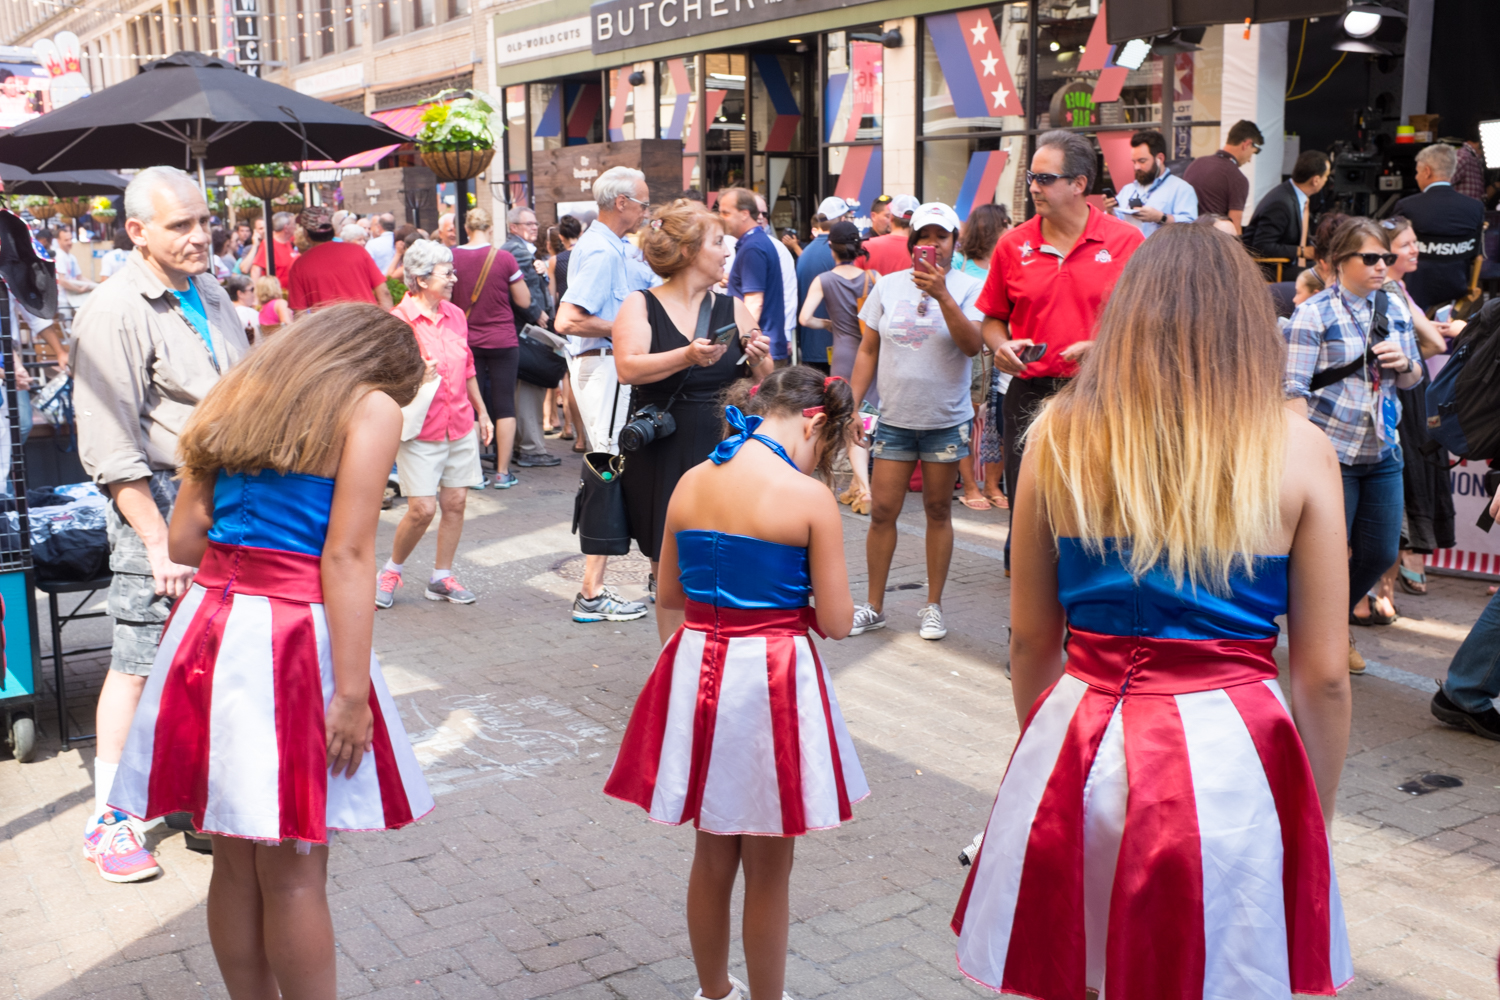 Those three girls from YouTube performed across from the MSNBC booth on West 4th Street.